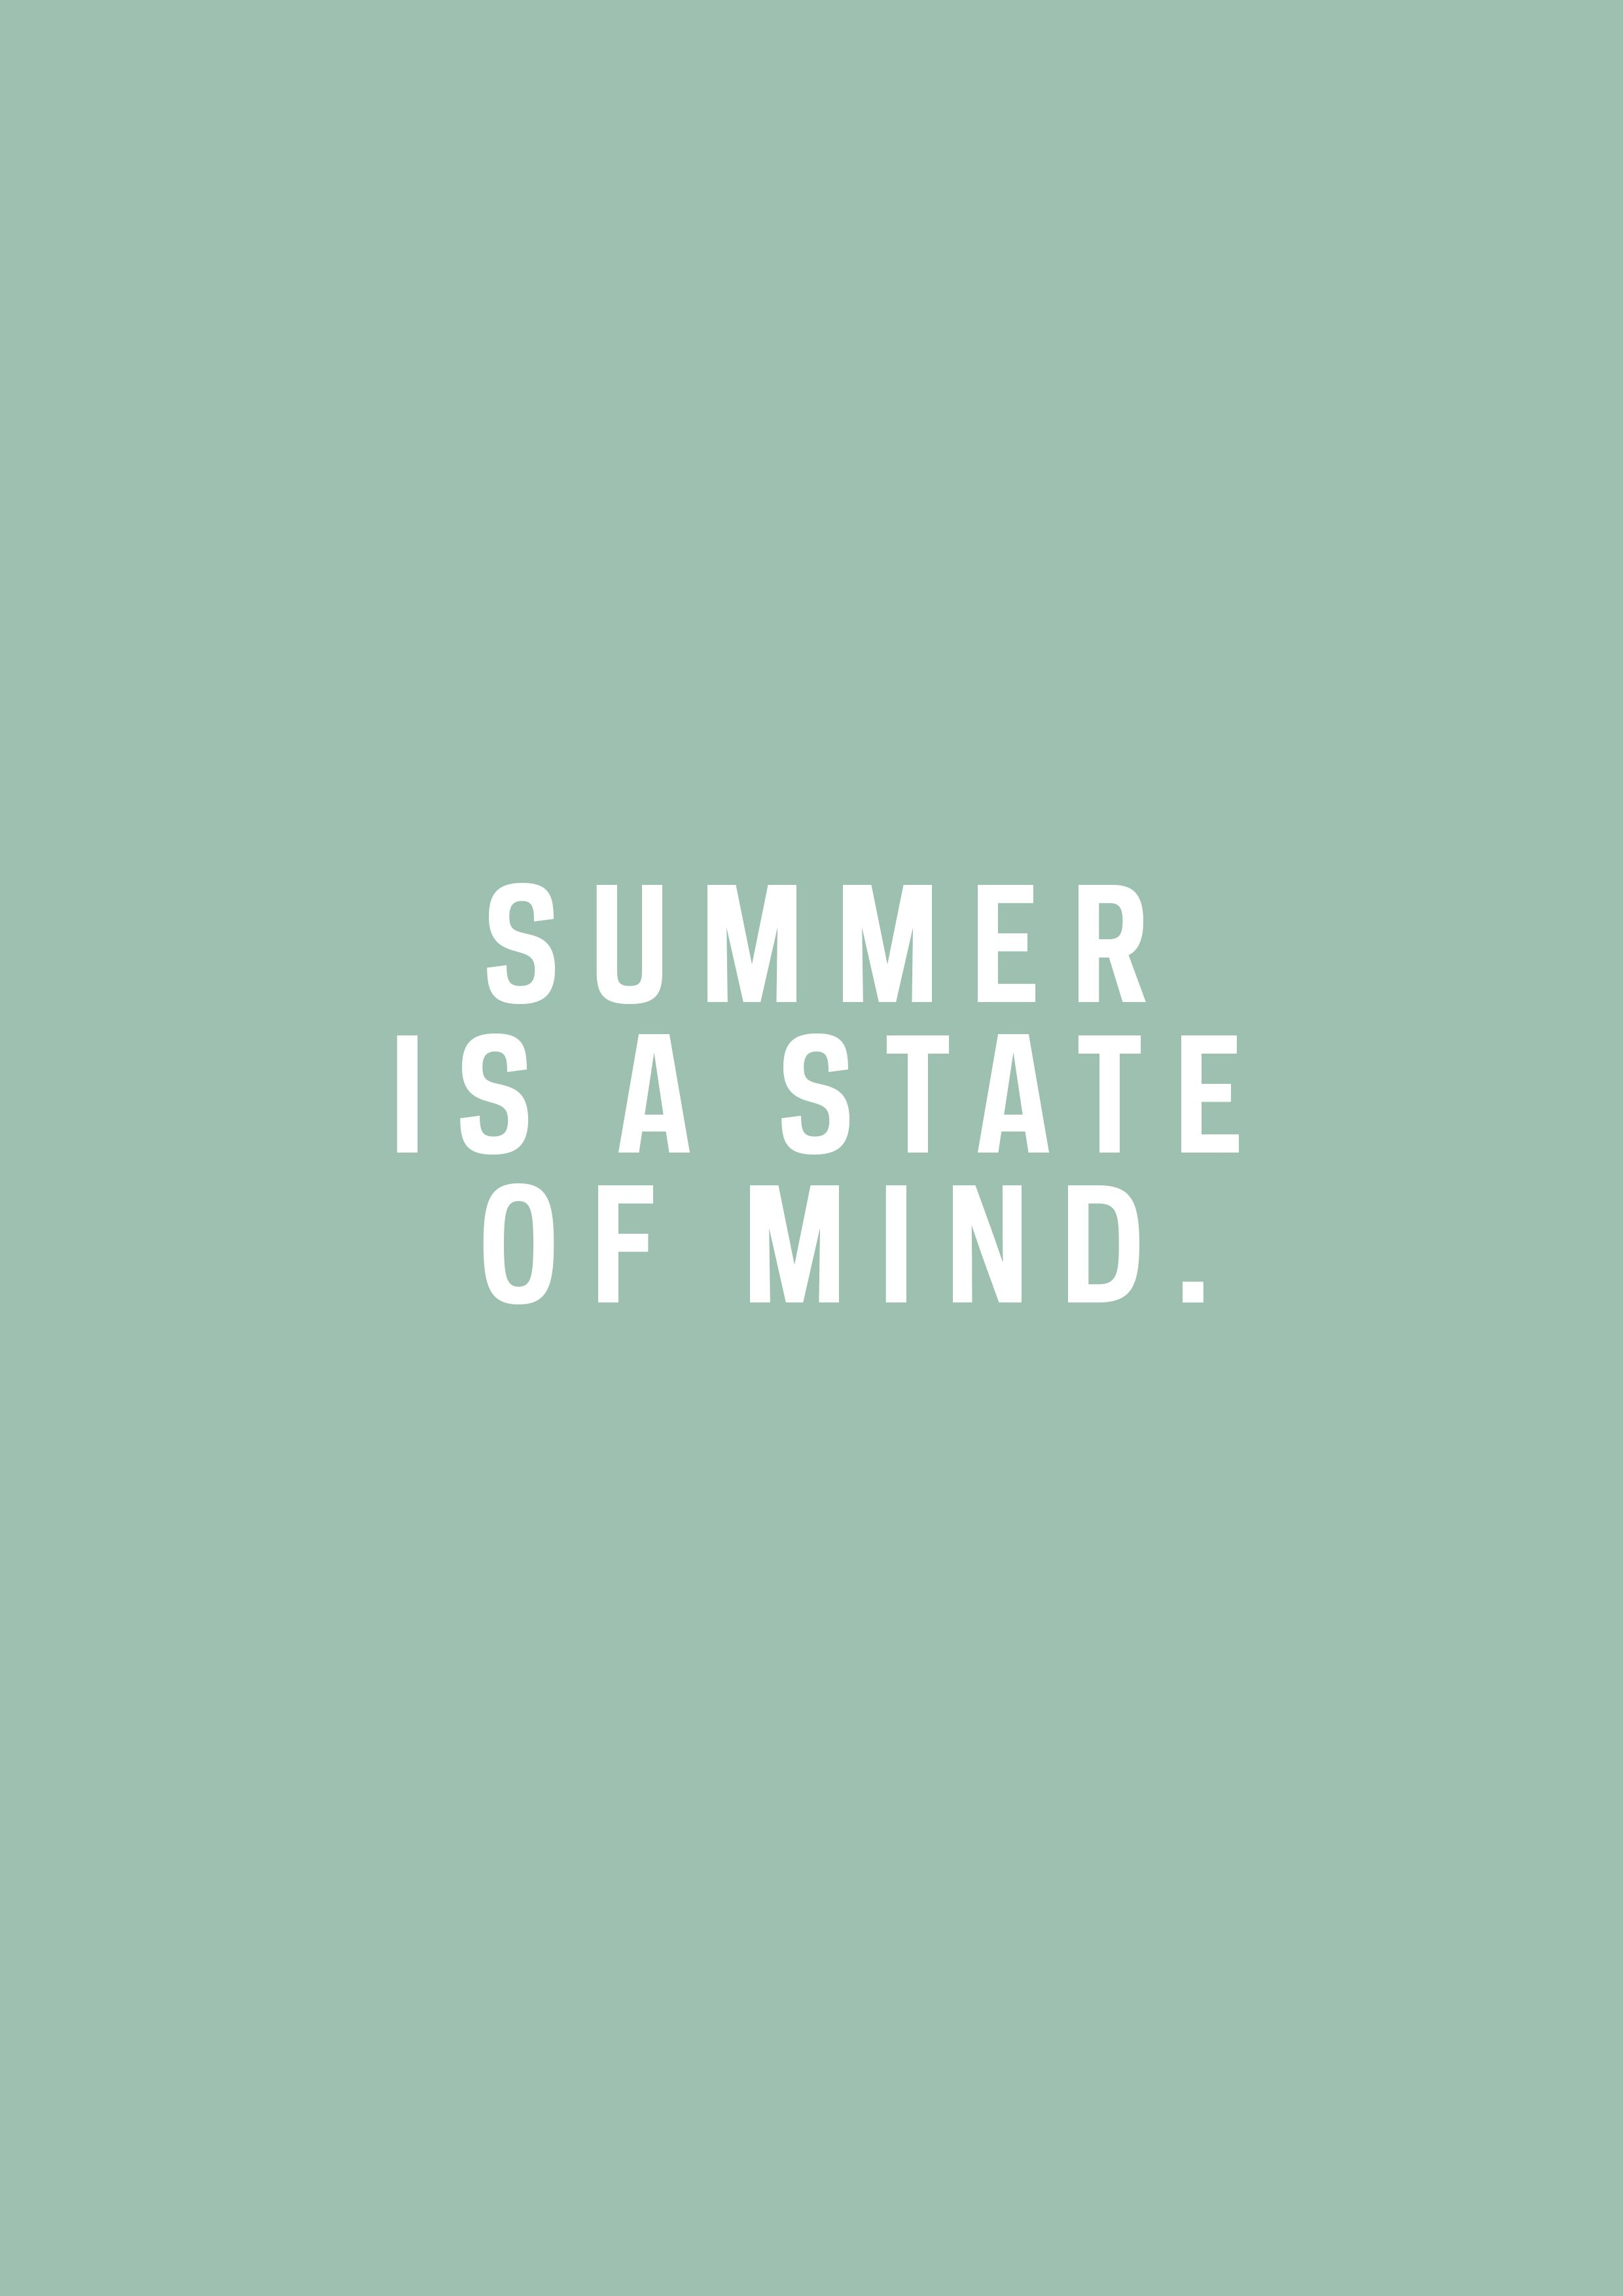 Pin by Aleksandra Bogdan on Stupid quotes | Summer quotes ...